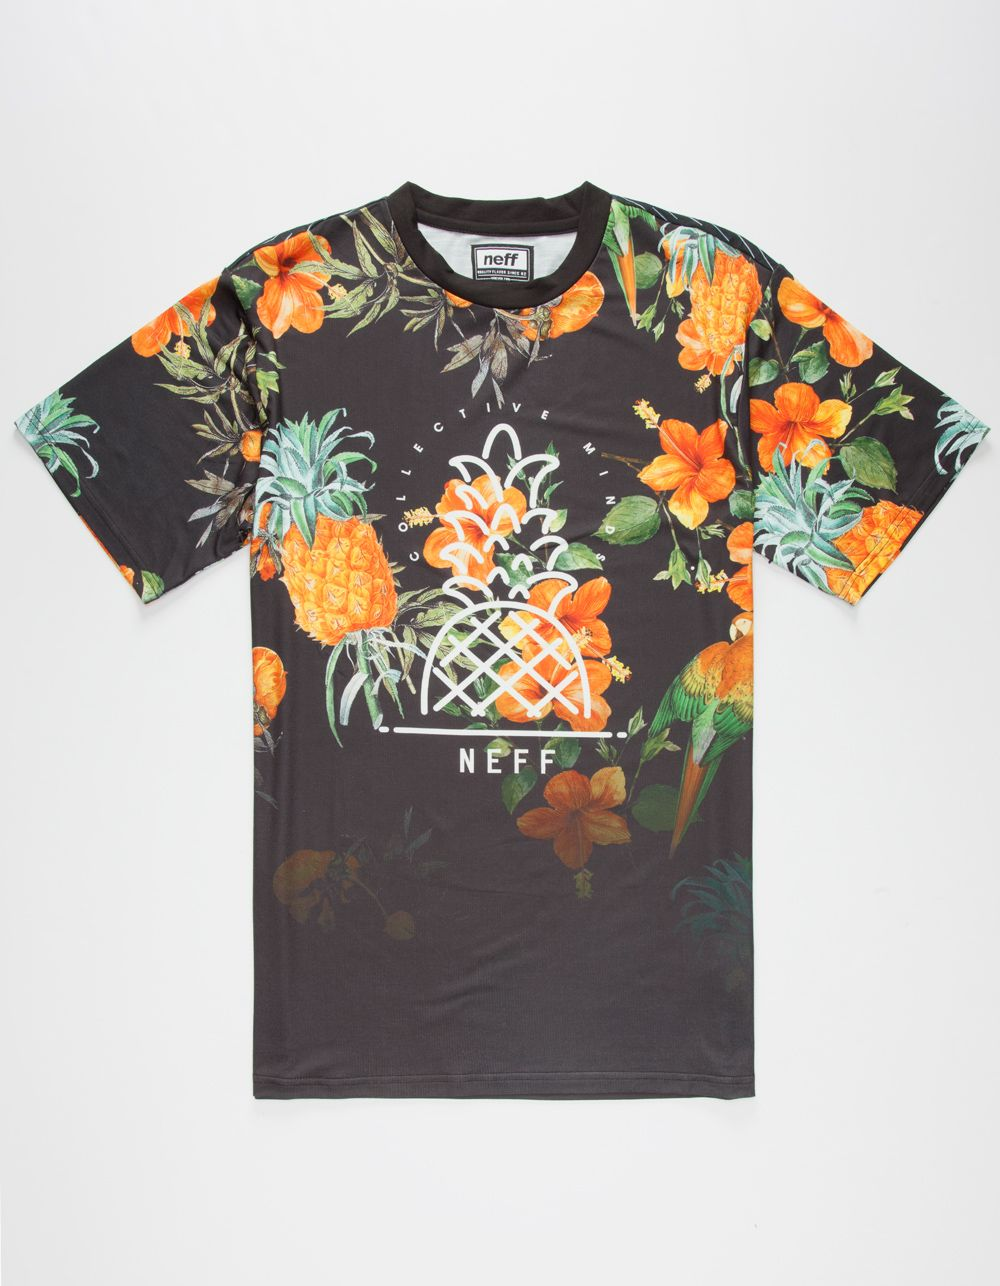 Men s T-Shirts - All Styles  387e24d7f2f